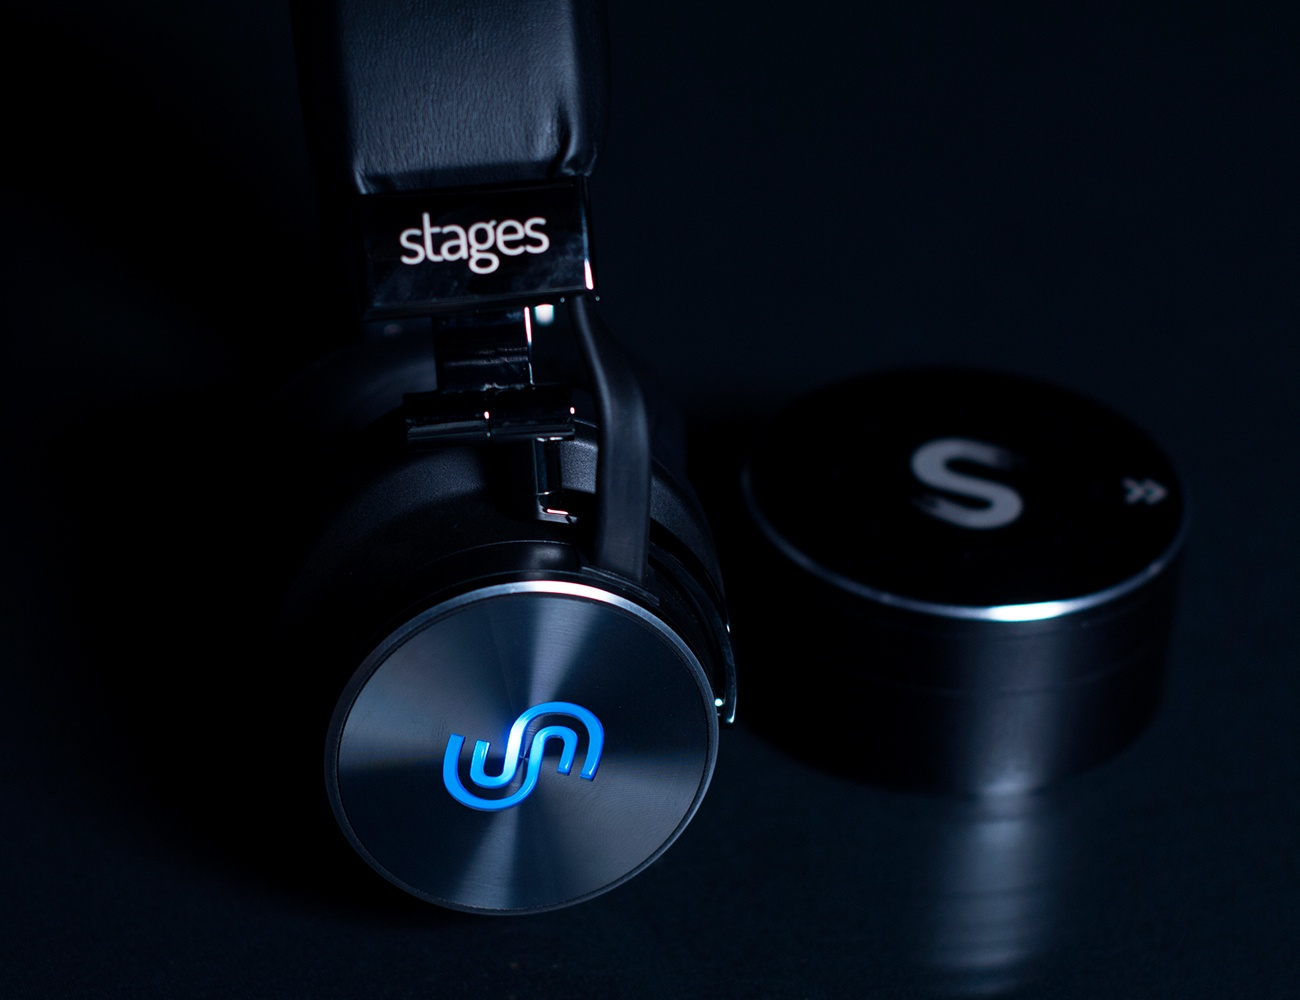 Stages Hero Headphones And Sidekick Tabletop Products